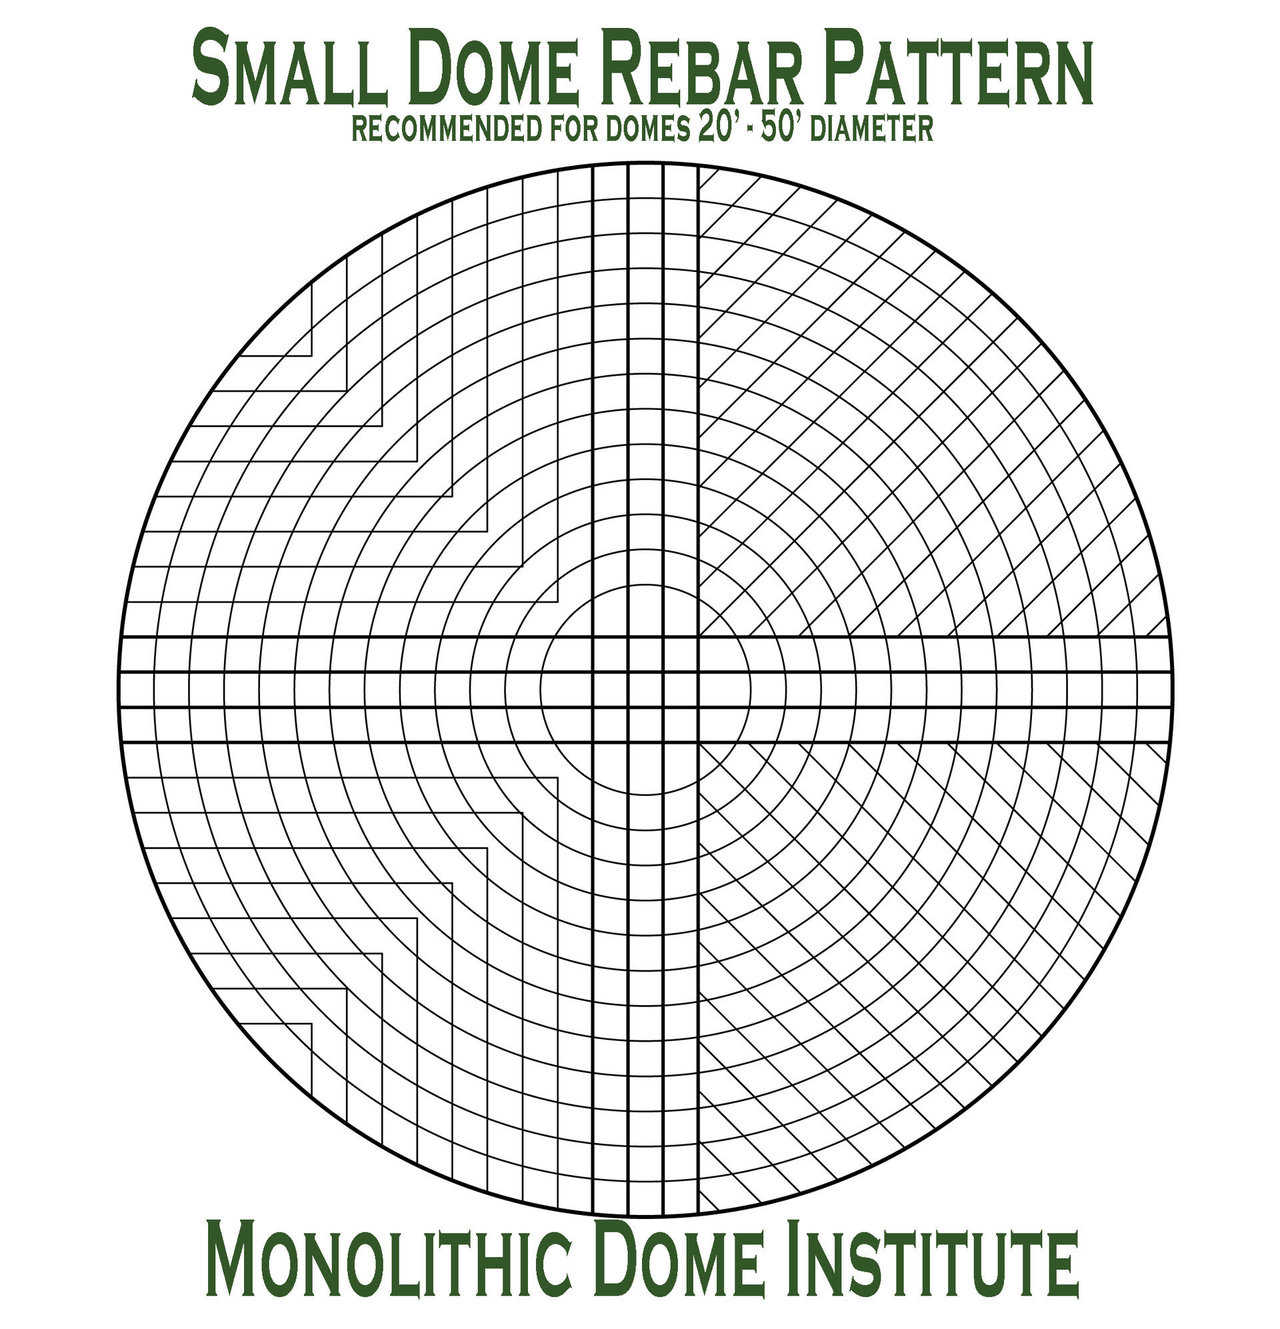 Construction Concrete Dome Home: Steel Rebar Placement In A Monolithic Dome